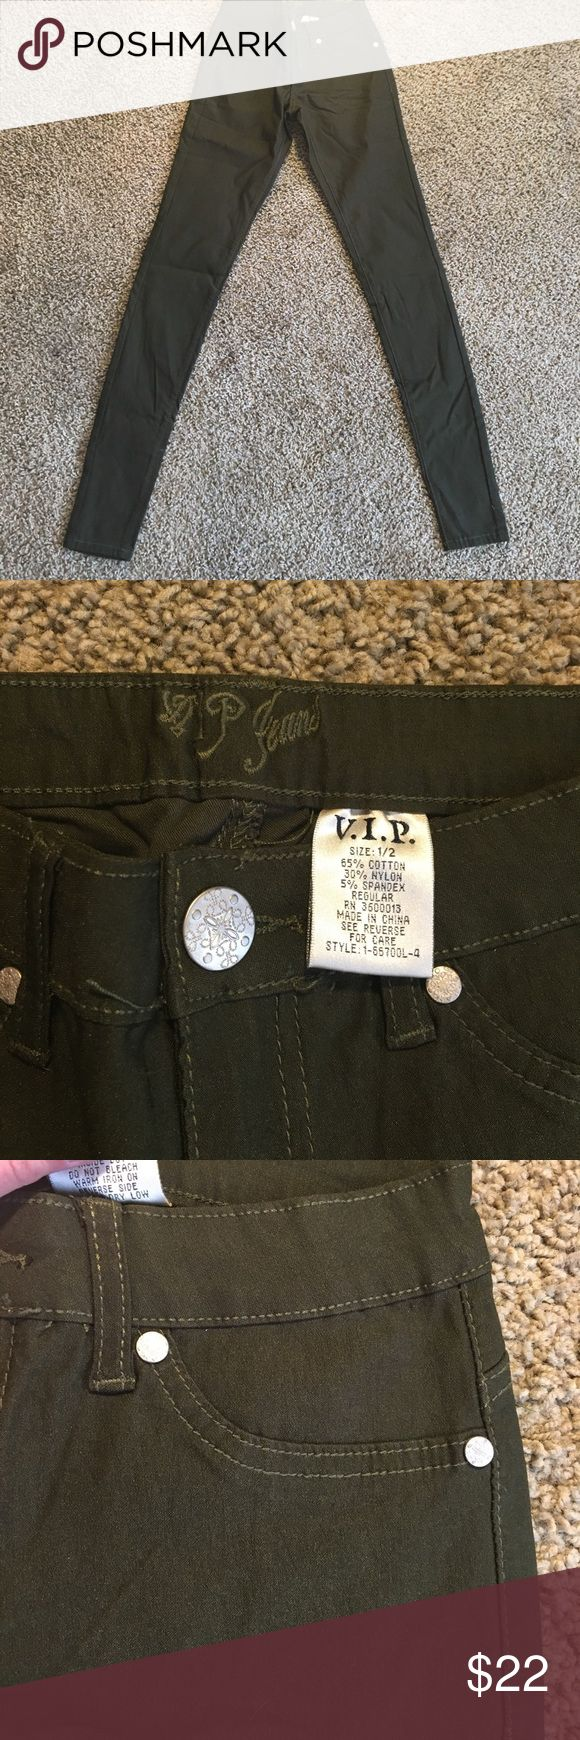 V.I.P. Jeans Brand nwot , never worn! Size 1/2 more towards a 1 - true to size, comes from a smoke and pet free environment :) There are no flaws, tears, or marks. I am open offers! Additional pictures upon request. VIP Jeans Skinny